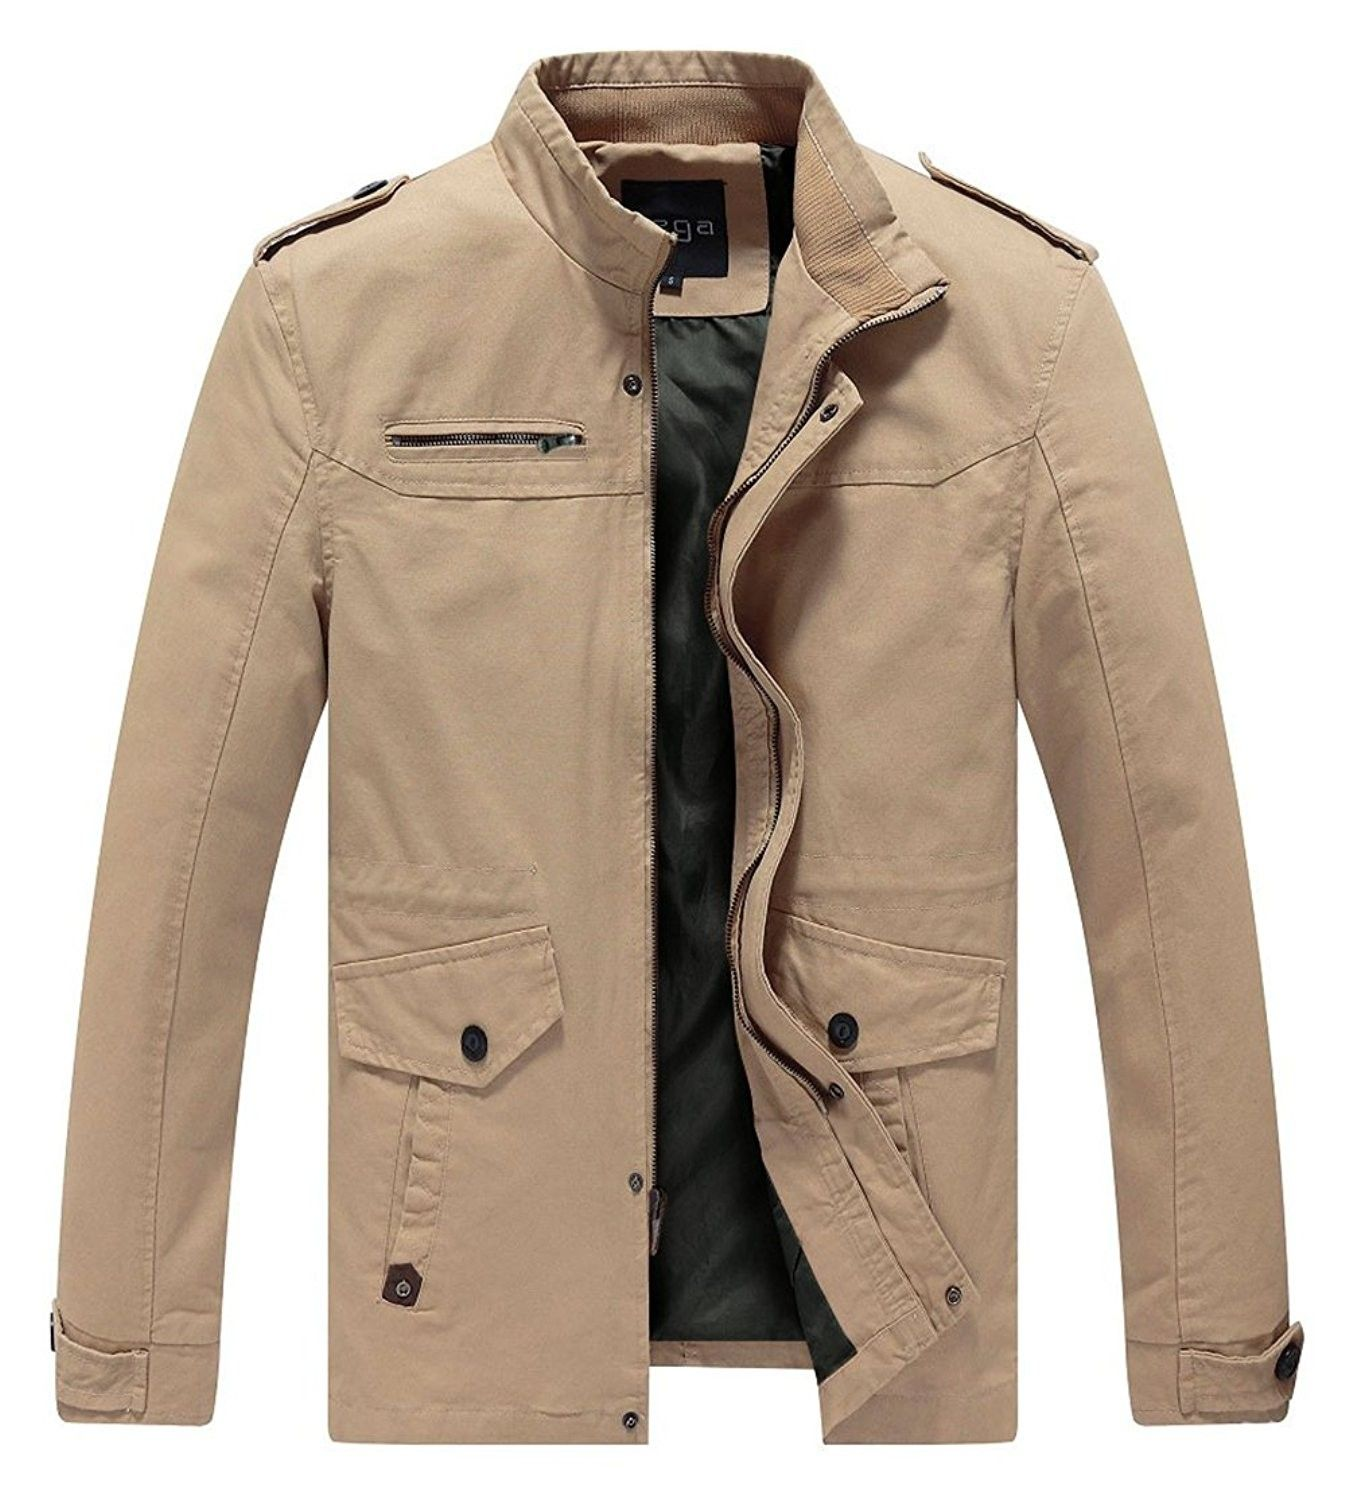 Casual Cotton Coat Stand Collar Military Windbreaker Jacket Khaki Cx1244fechz Men Casual Casual Outerwear Thick Jackets [ 1500 x 1346 Pixel ]